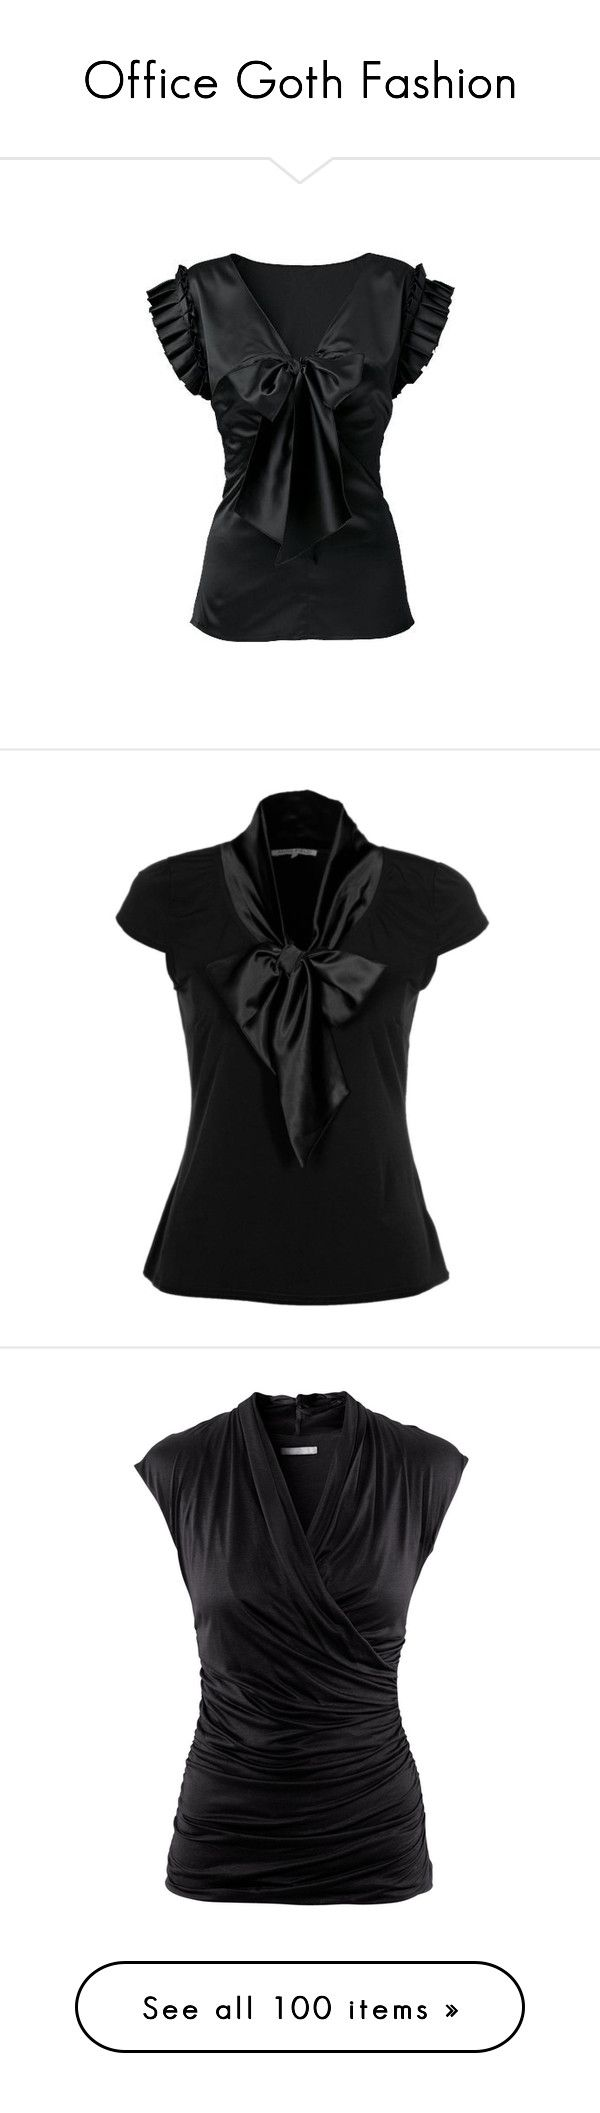 """""""Office Goth Fashion"""" by shannen-legere-lavigne ❤ liked on Polyvore featuring goth, corporate, tops, blouses, shirts, blusas, black, going out tops, black blouse and flutter sleeve blouse"""